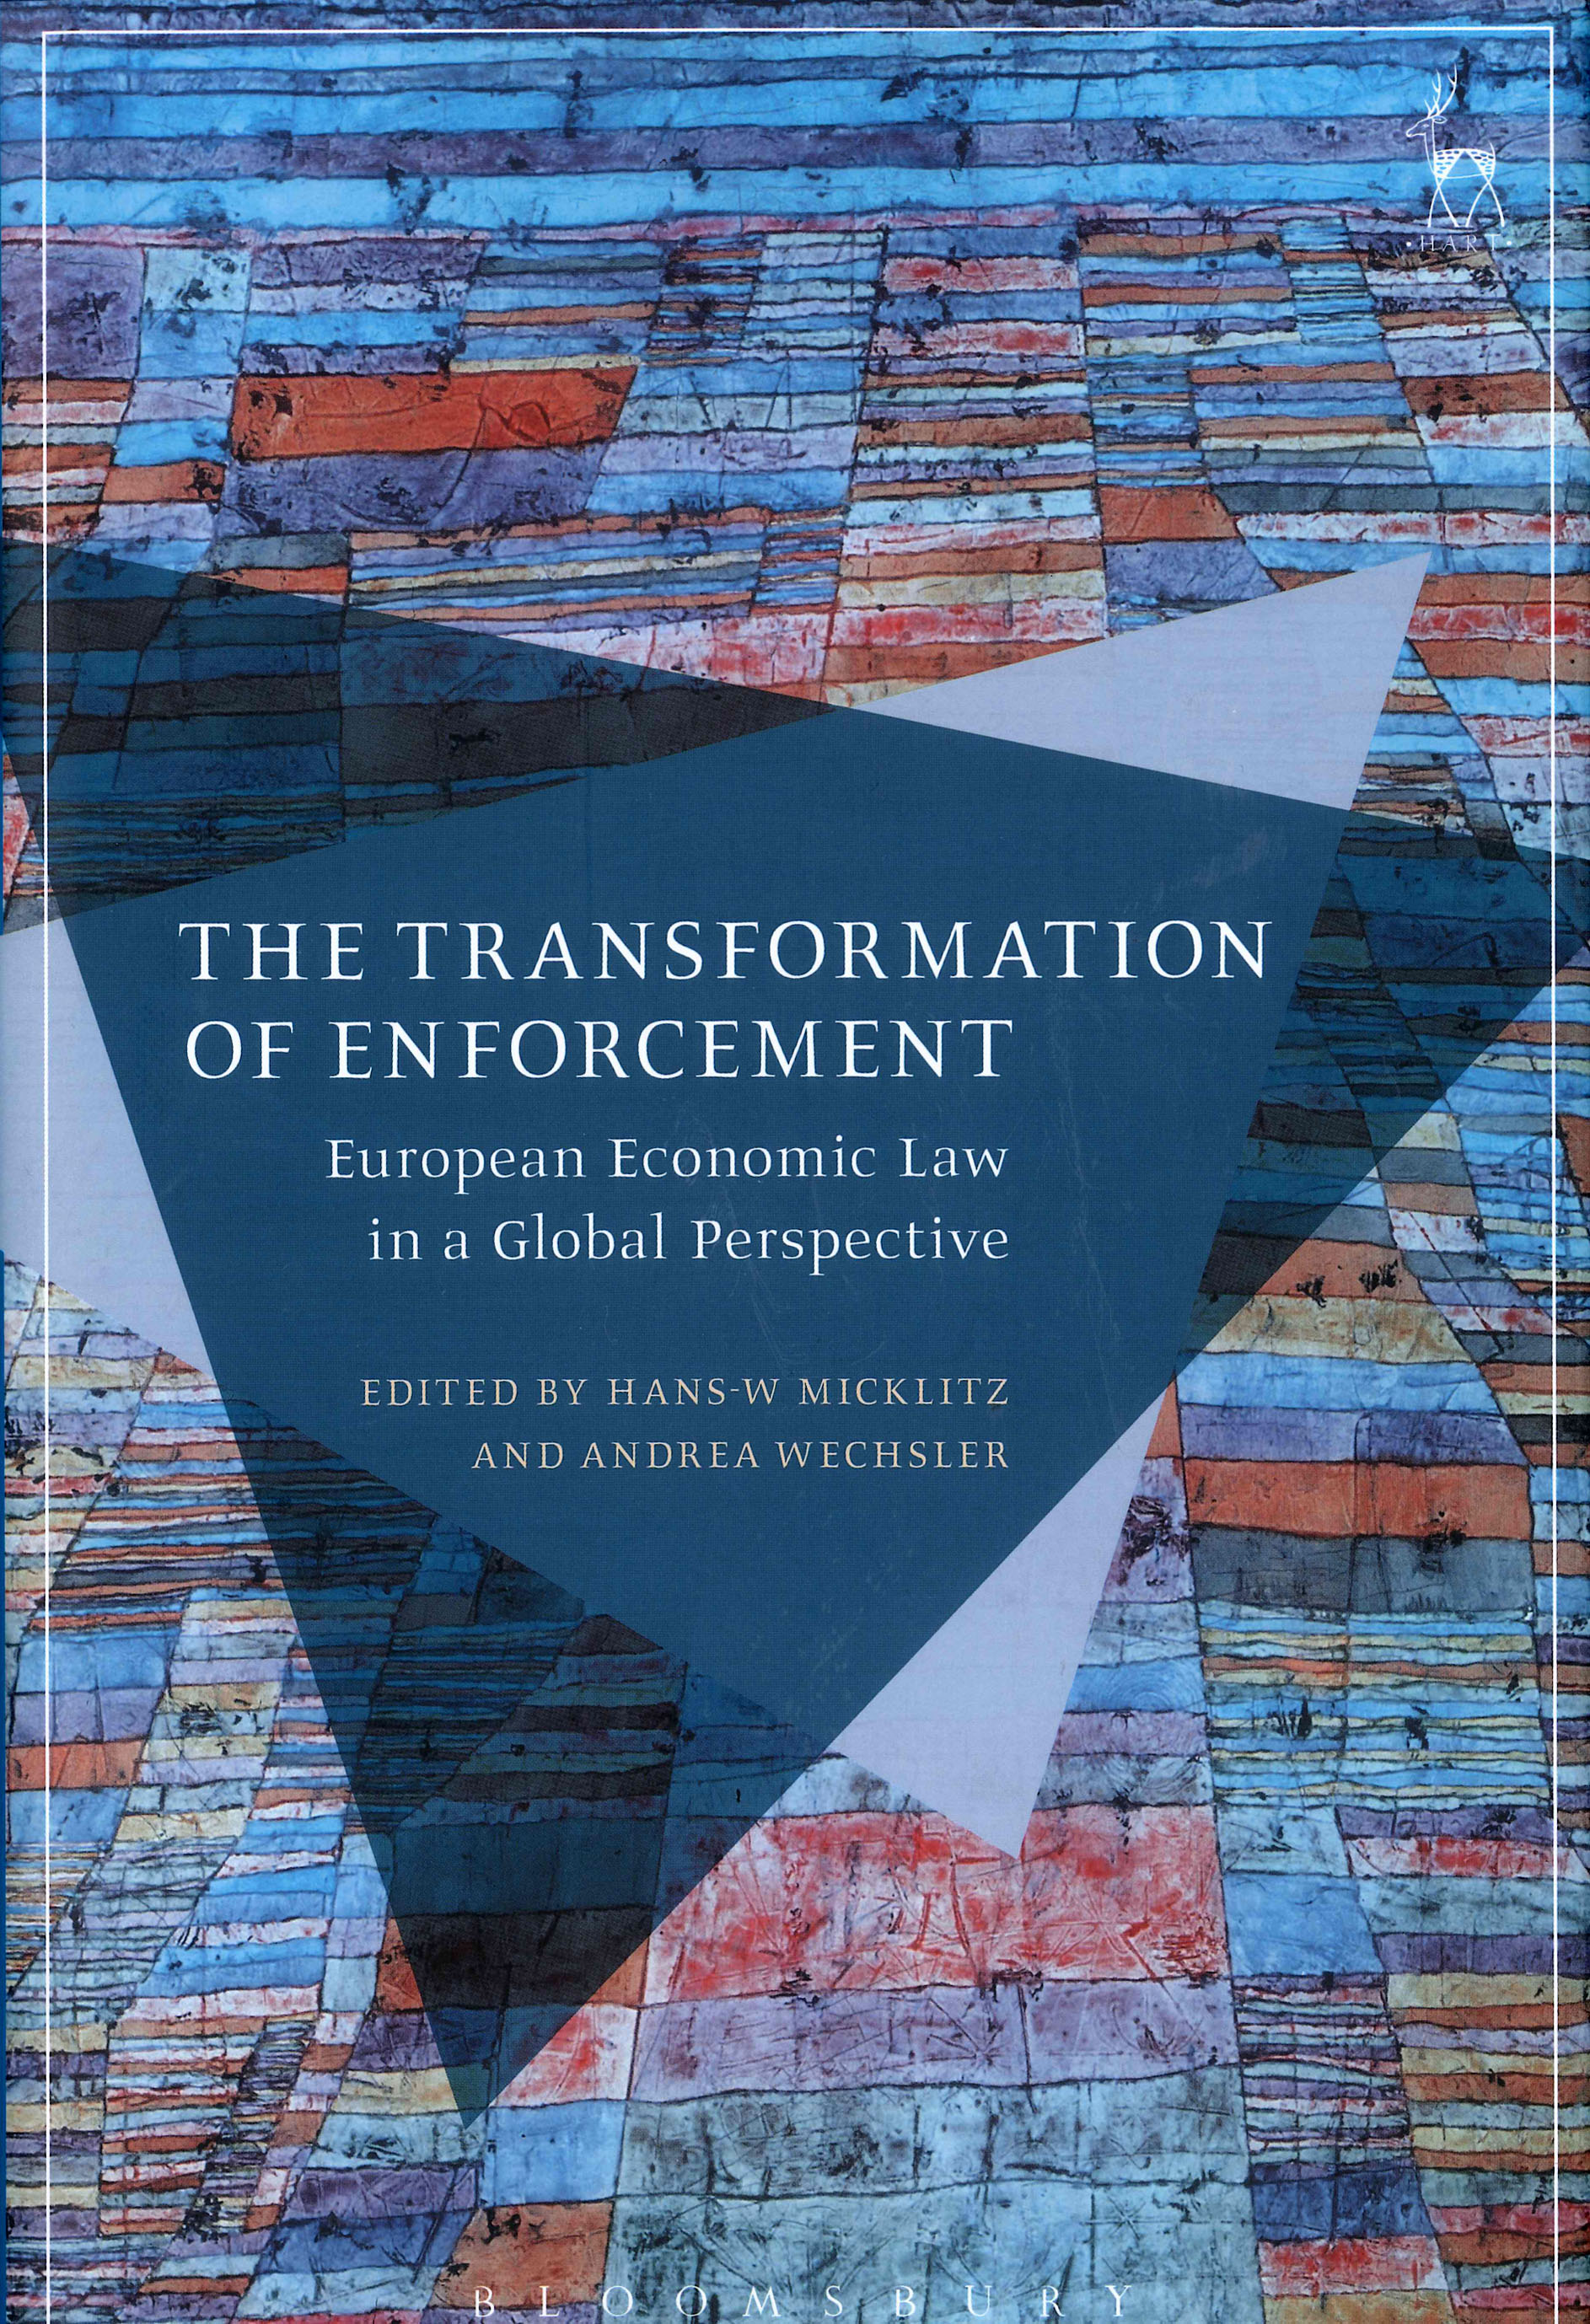 The transformation of enforcement: European economic law in a global perspective